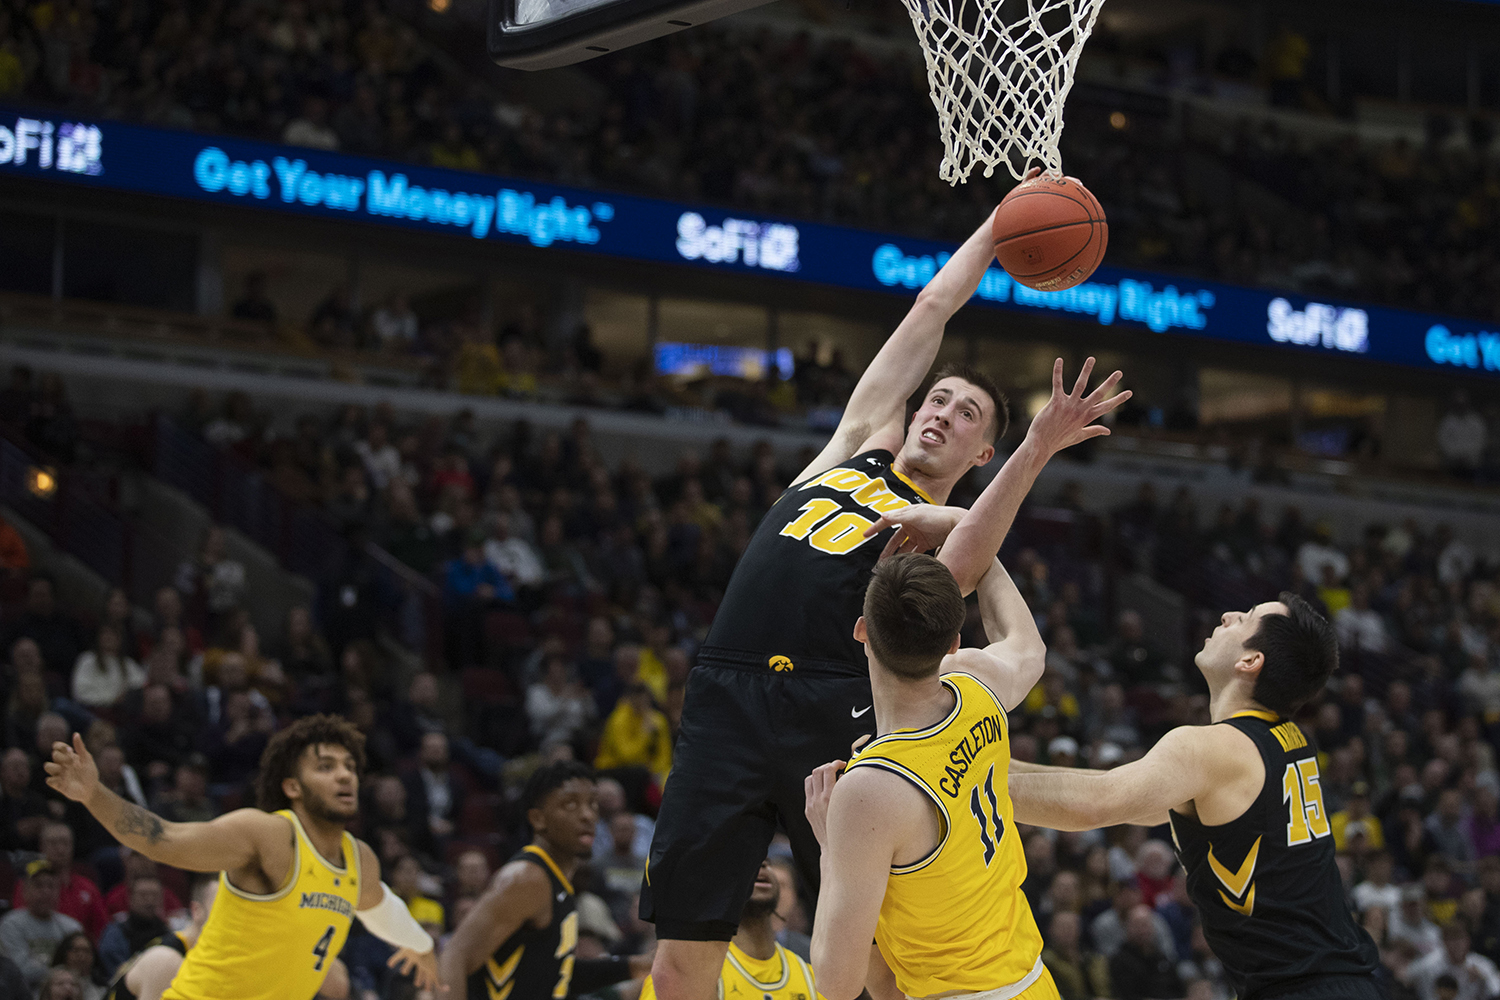 Iowa guard Joe Wieskamp grabs a rebound during the Iowa/Michigan Big Ten Tournament men's basketball game in the United Center in Chicago on Friday, March 15, 2019. The Wolverines lead the Hawkeyes, 40-27, at the half.